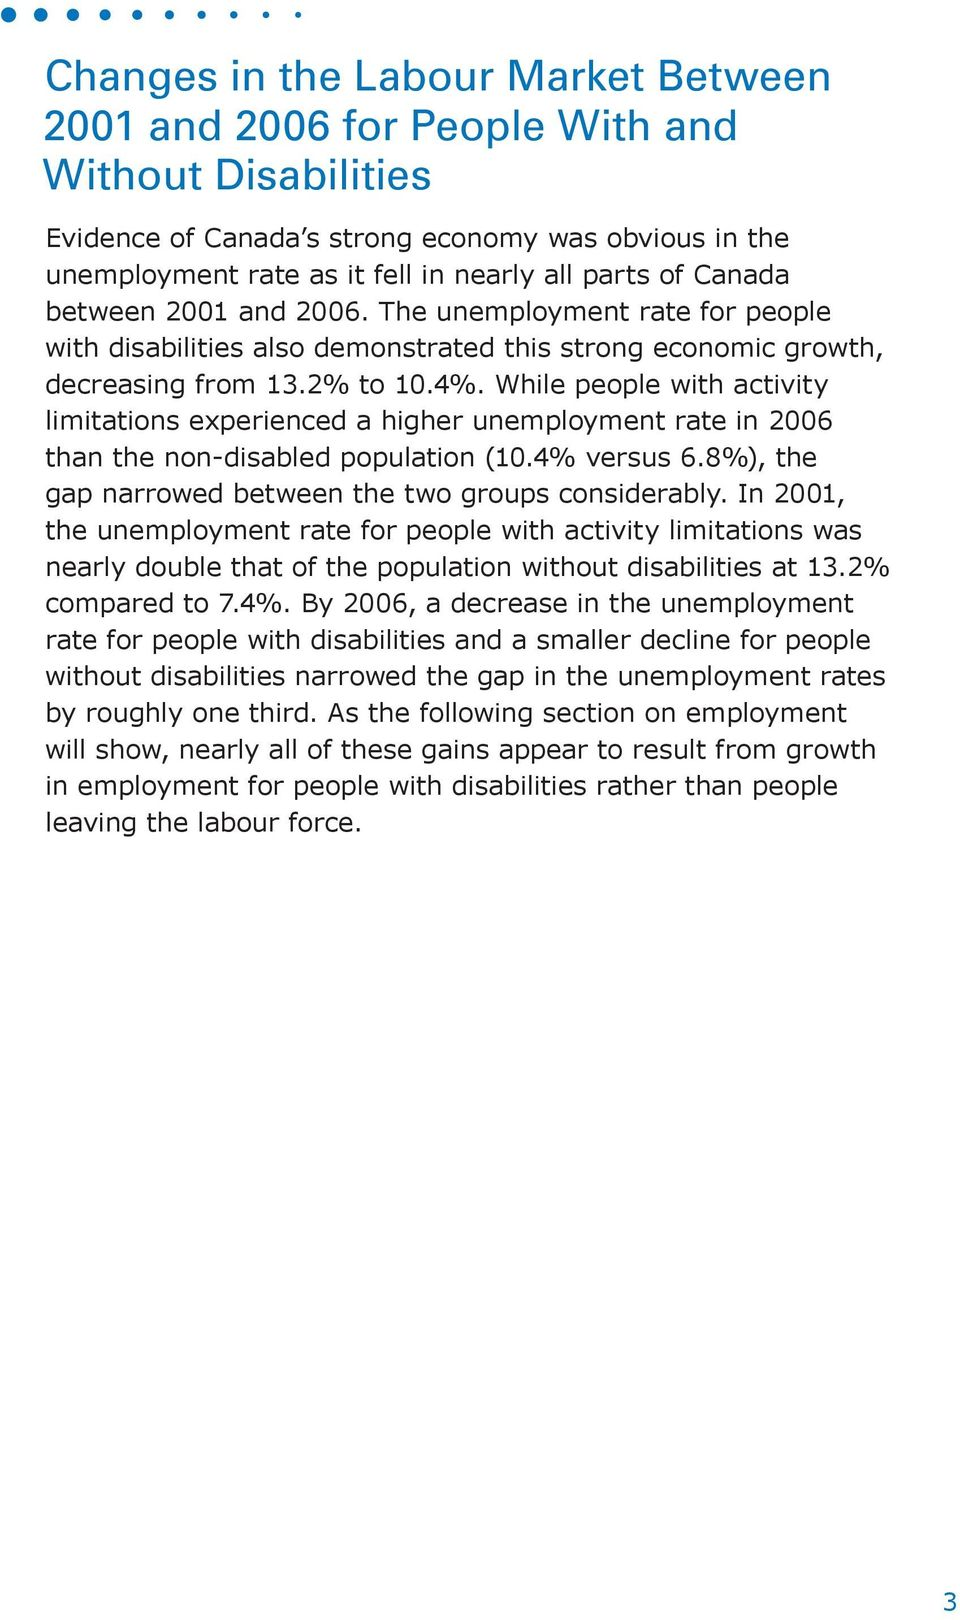 The rate for people with disabilities also demonstrated this strong economic growth, decreasing from 13.2% to 10.4%.